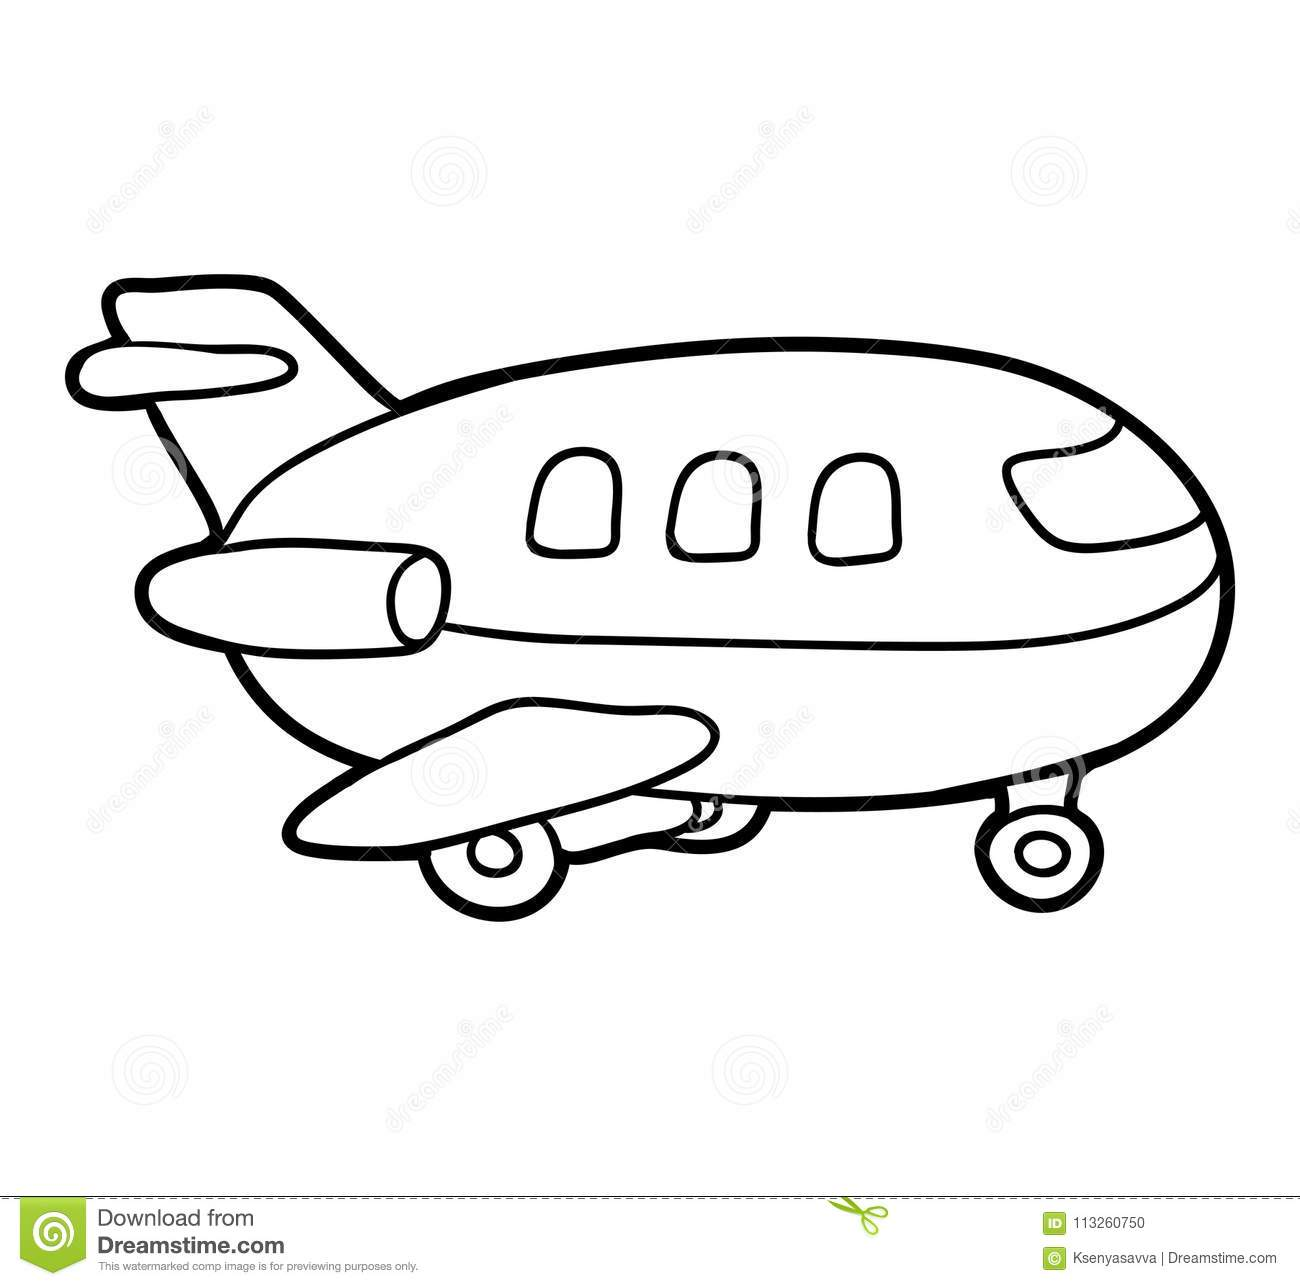 Coloring Book Airplane Stock Vector Illustration Of Page 113260750